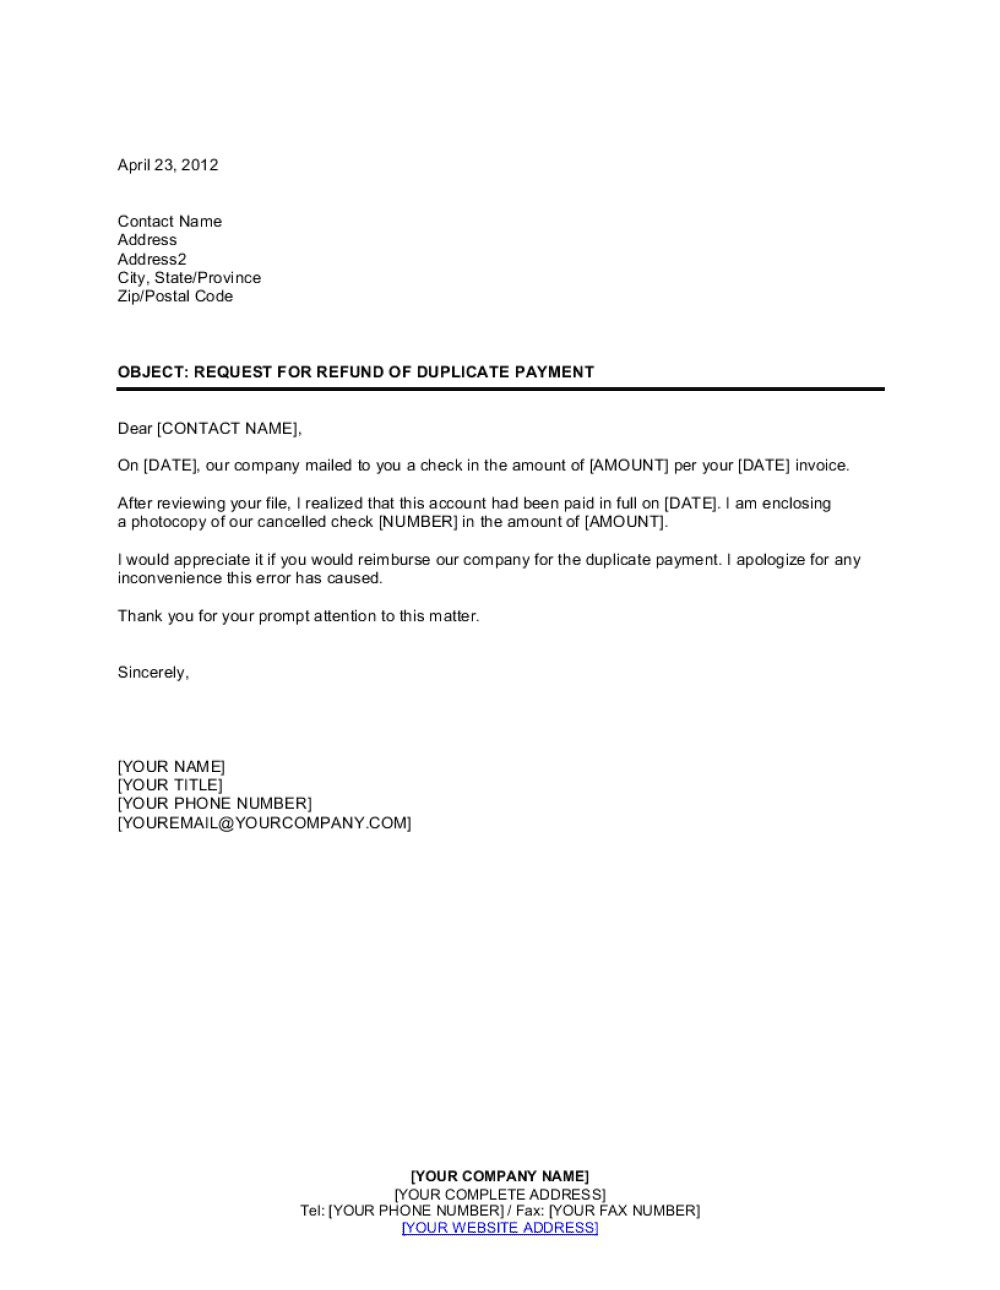 004 Simple No Return Policy Template High Resolution Full